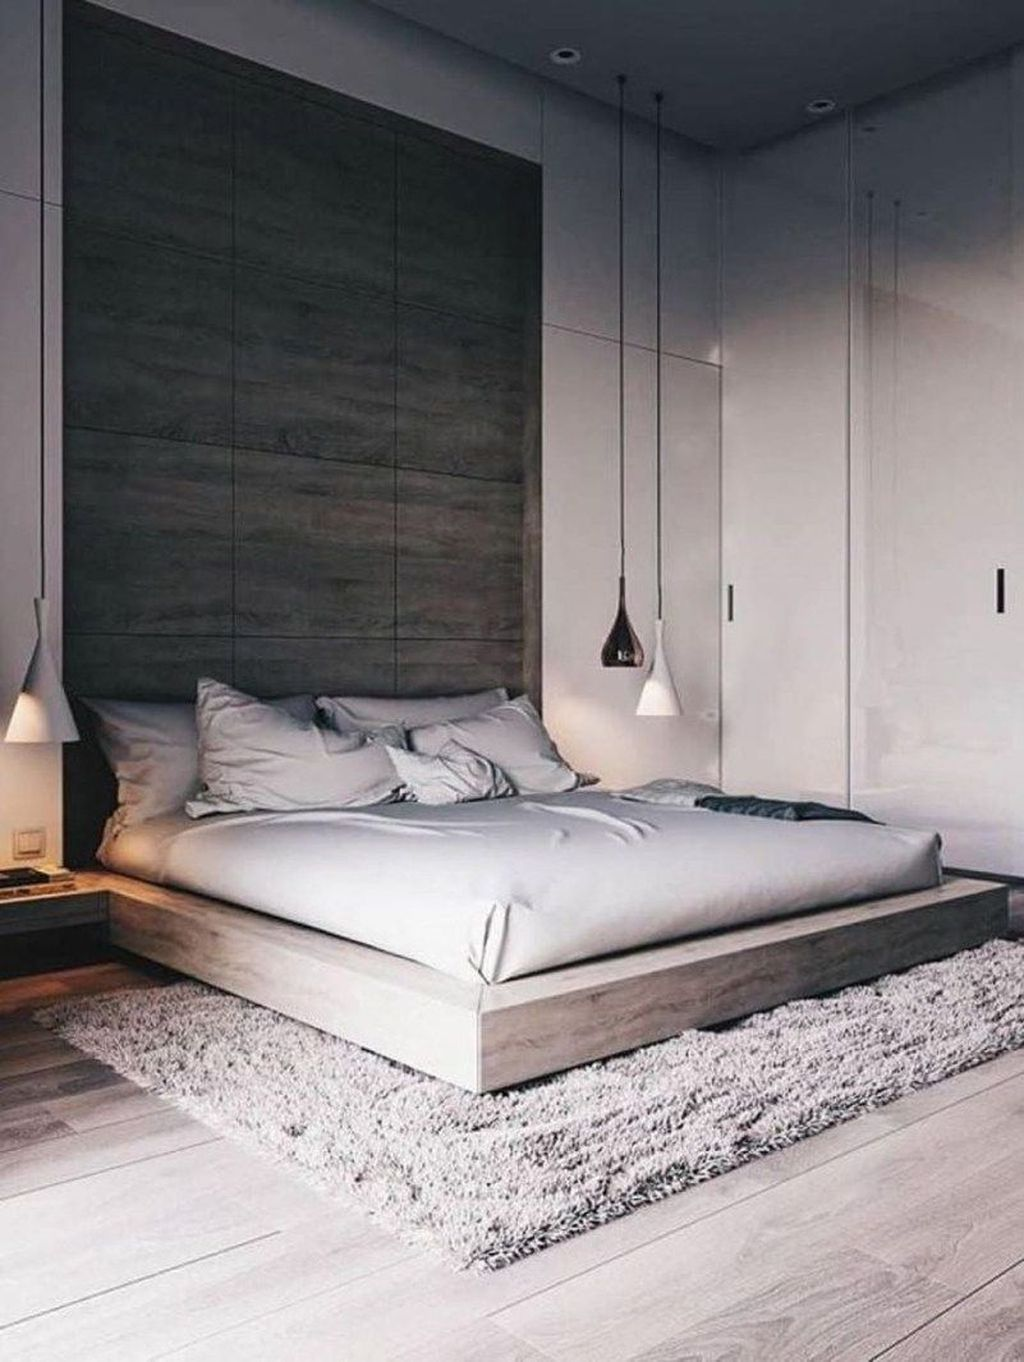 44 Stunning White Master Bedroom Ideas Match For Any Home Design Modern Master Bedroom Luxurious Bedrooms Small Master Bedroom